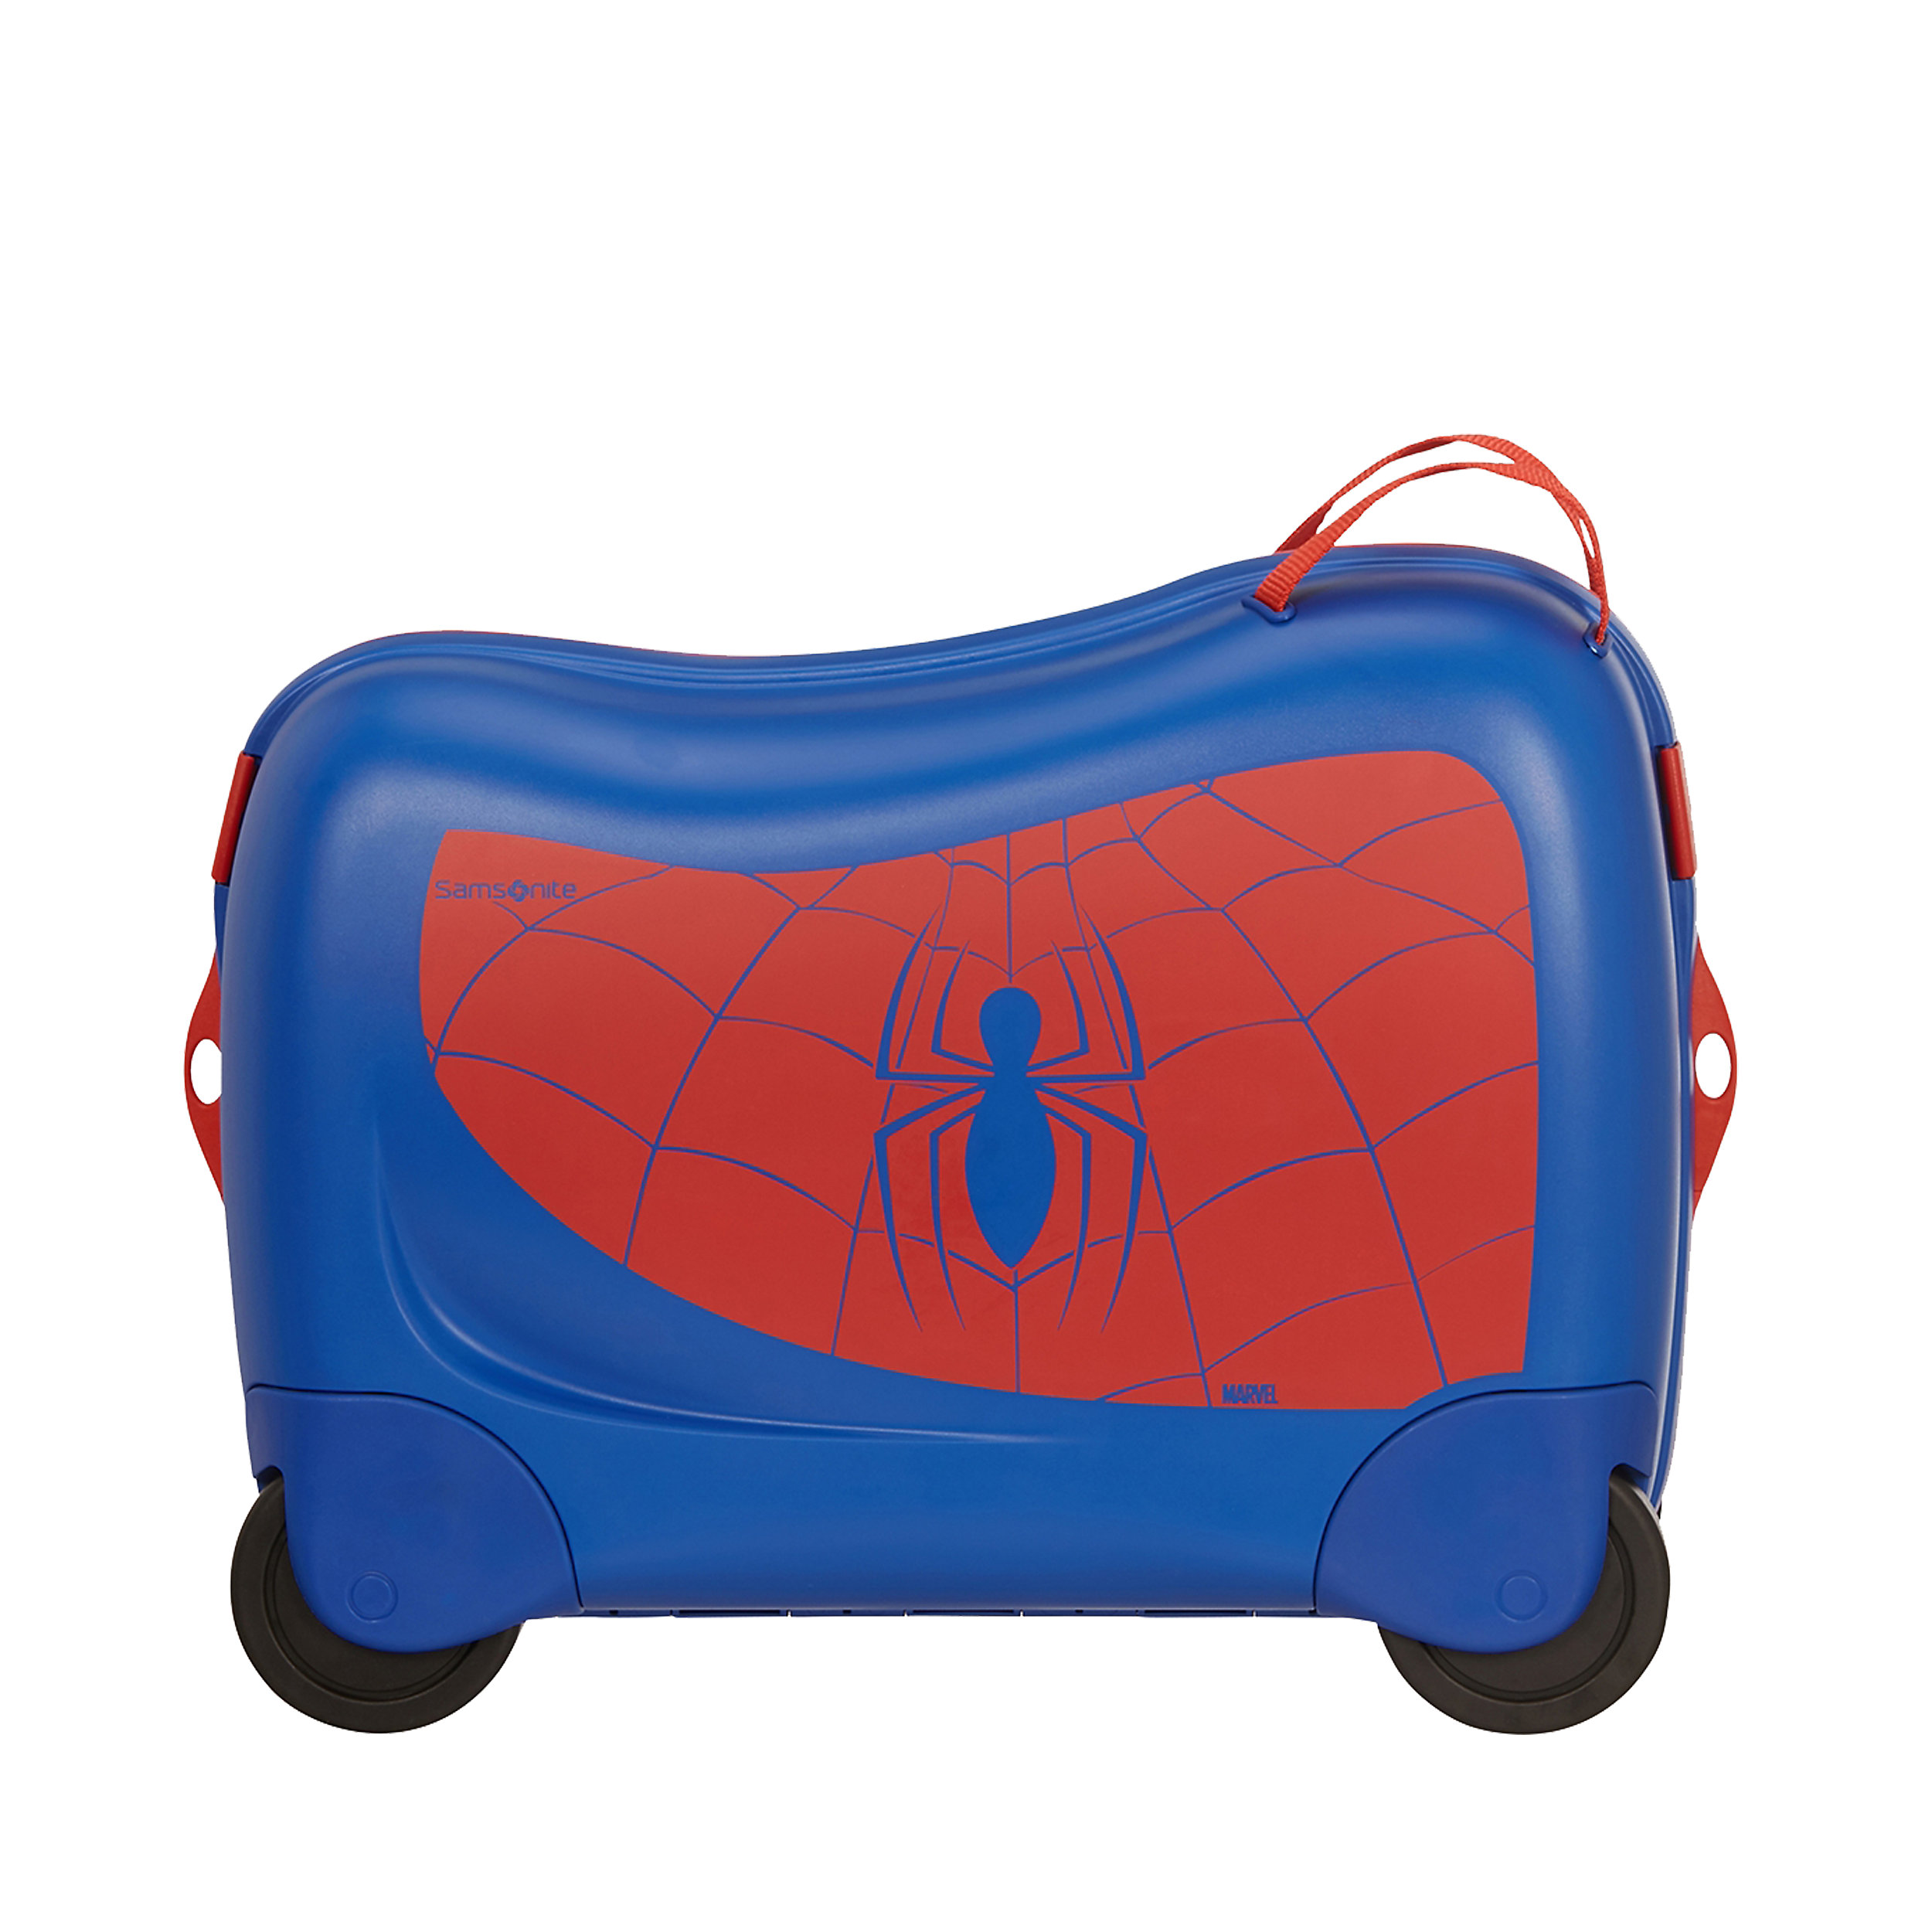 Kindertrolley mit 4 Rollen Marvel Ultimate 2.0 37cm Dream Rider XS 28 Liter